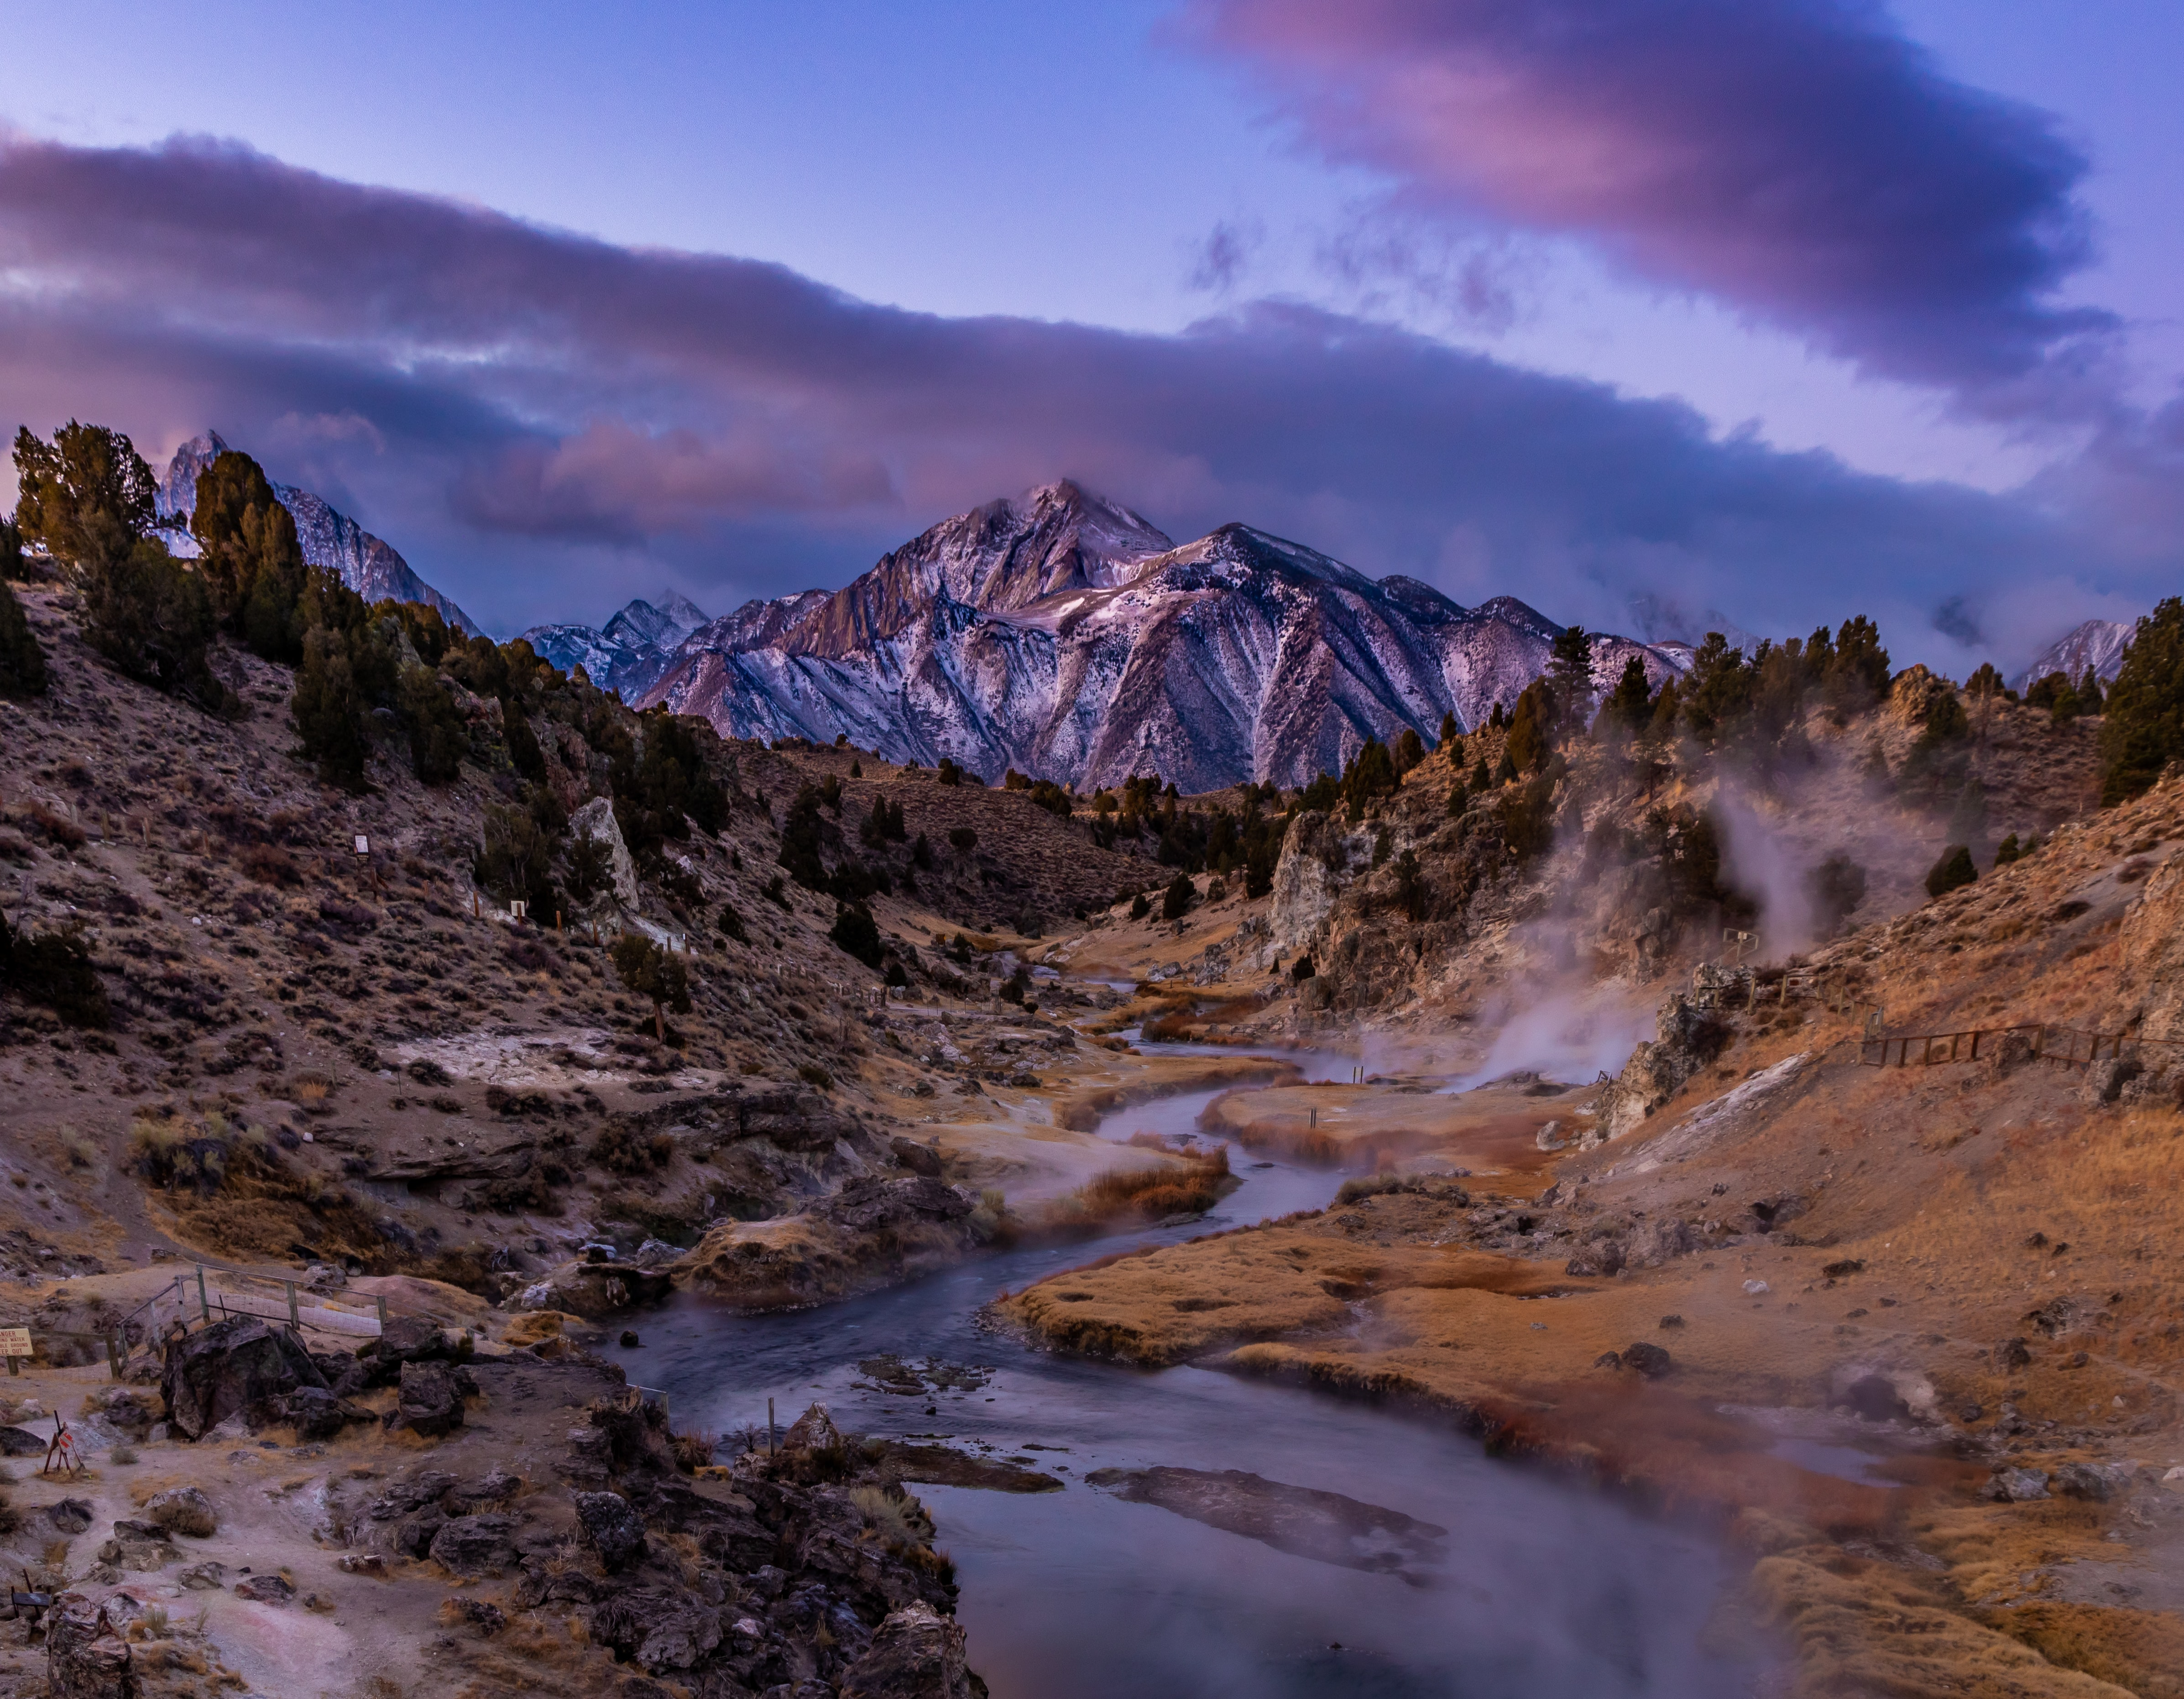 148868 download wallpaper Nature, Mountain, Creek, Brook, Dusk, Twilight, Landscape screensavers and pictures for free